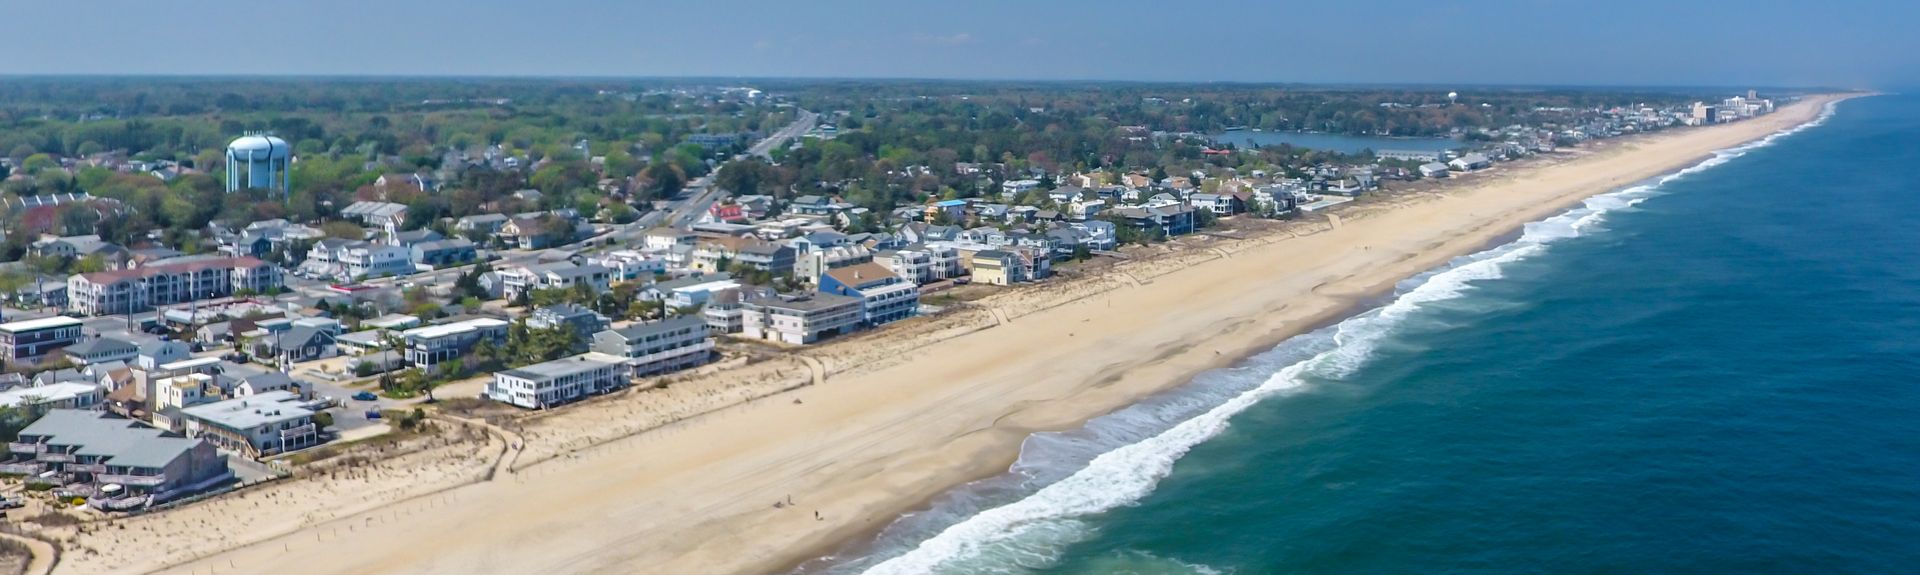 Rehoboth By The Sea Dewey Beach Vacation Als For 2019